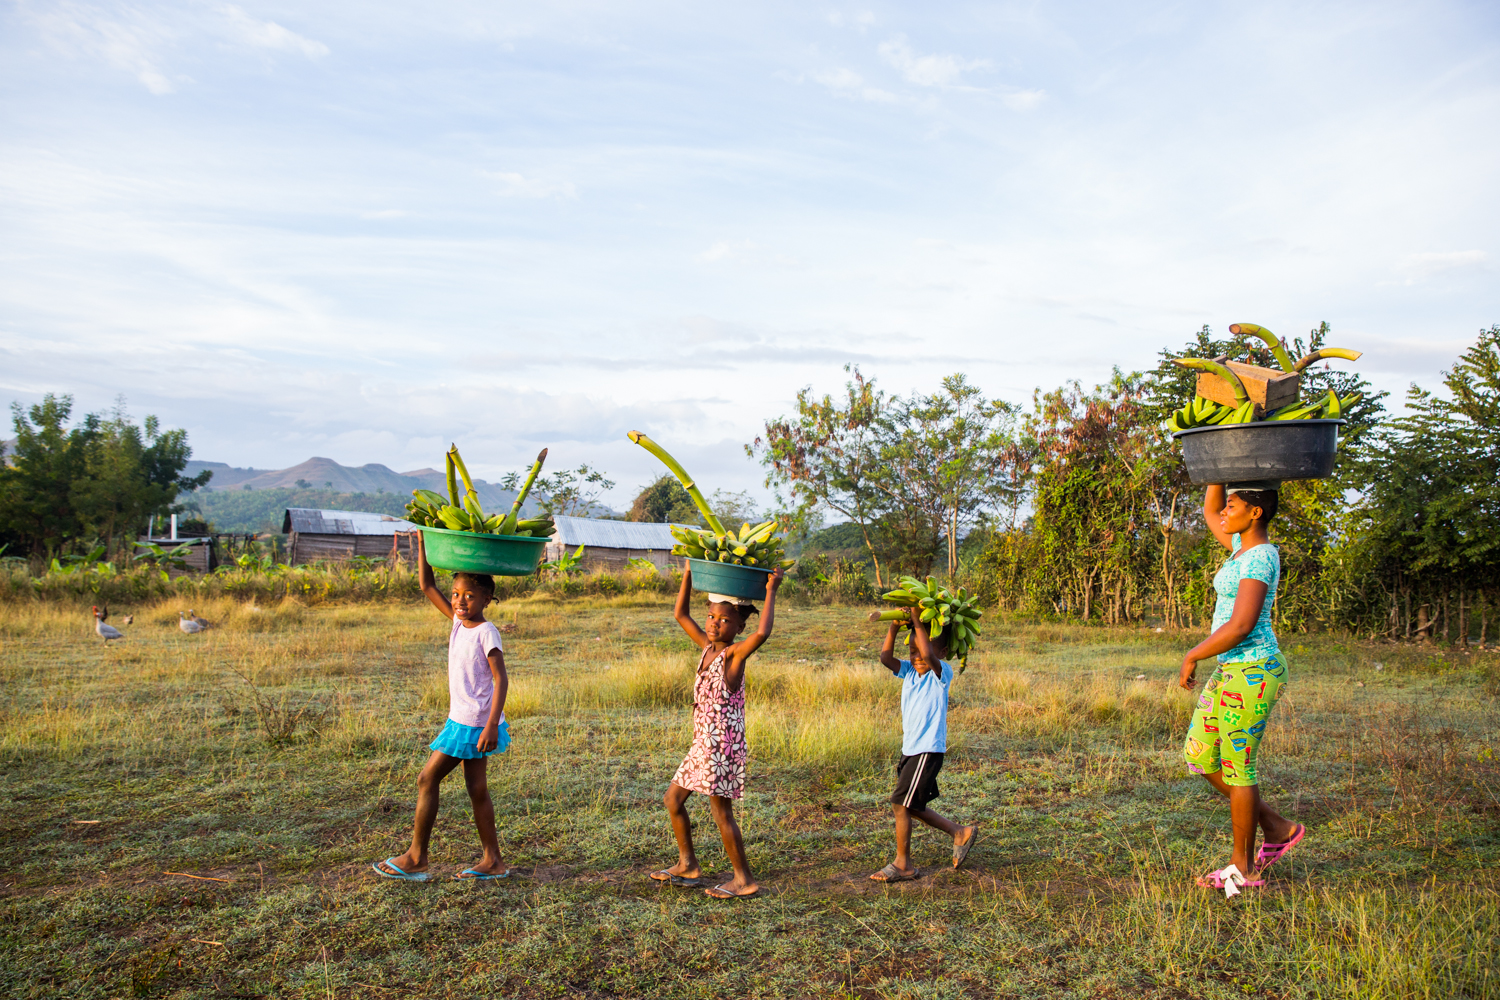 A family of banana farmers walk at sunrise in Central Plateau.